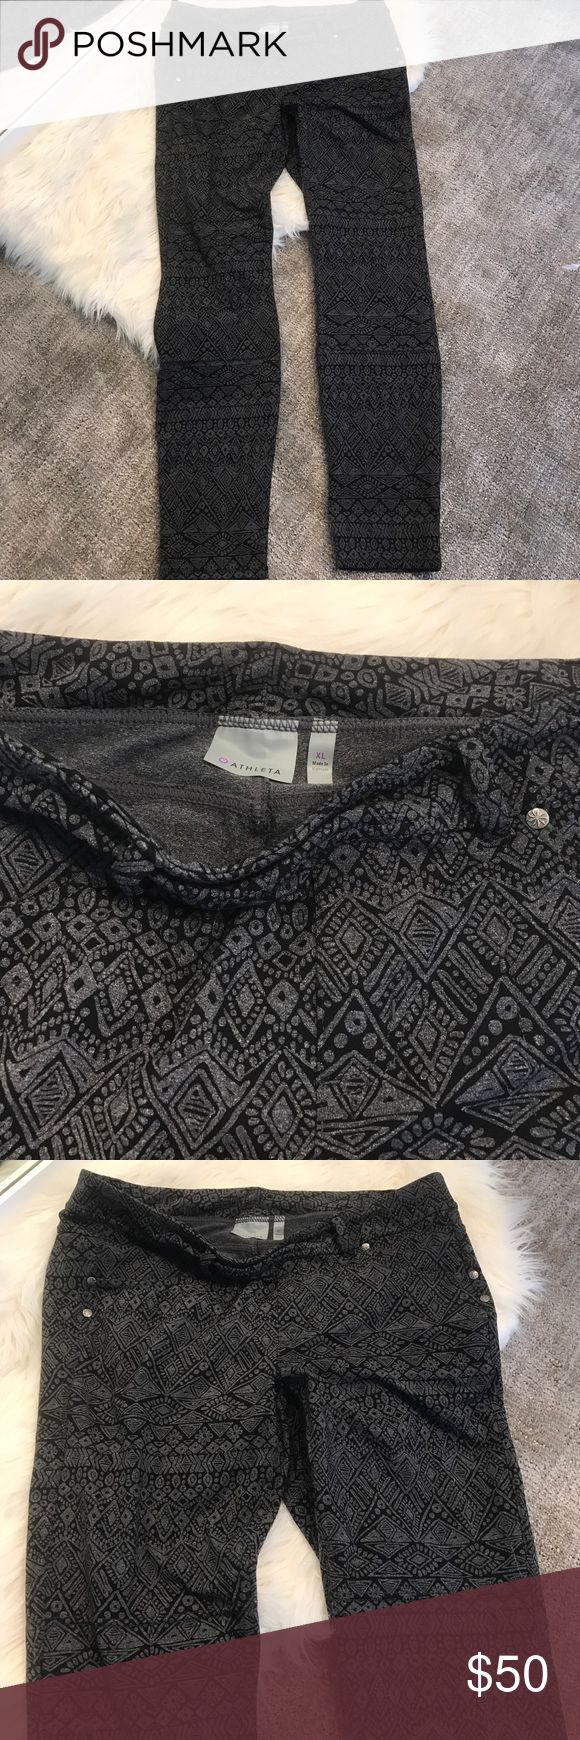 ATHLETA Aztec print pant Gray SIZE XL Athleta Aztec print pant barely worn gray and black colored SIZE XL can be worn for yoga or dressed up with boots!! Offers and bundles accepted!! Athleta Pants Skinny